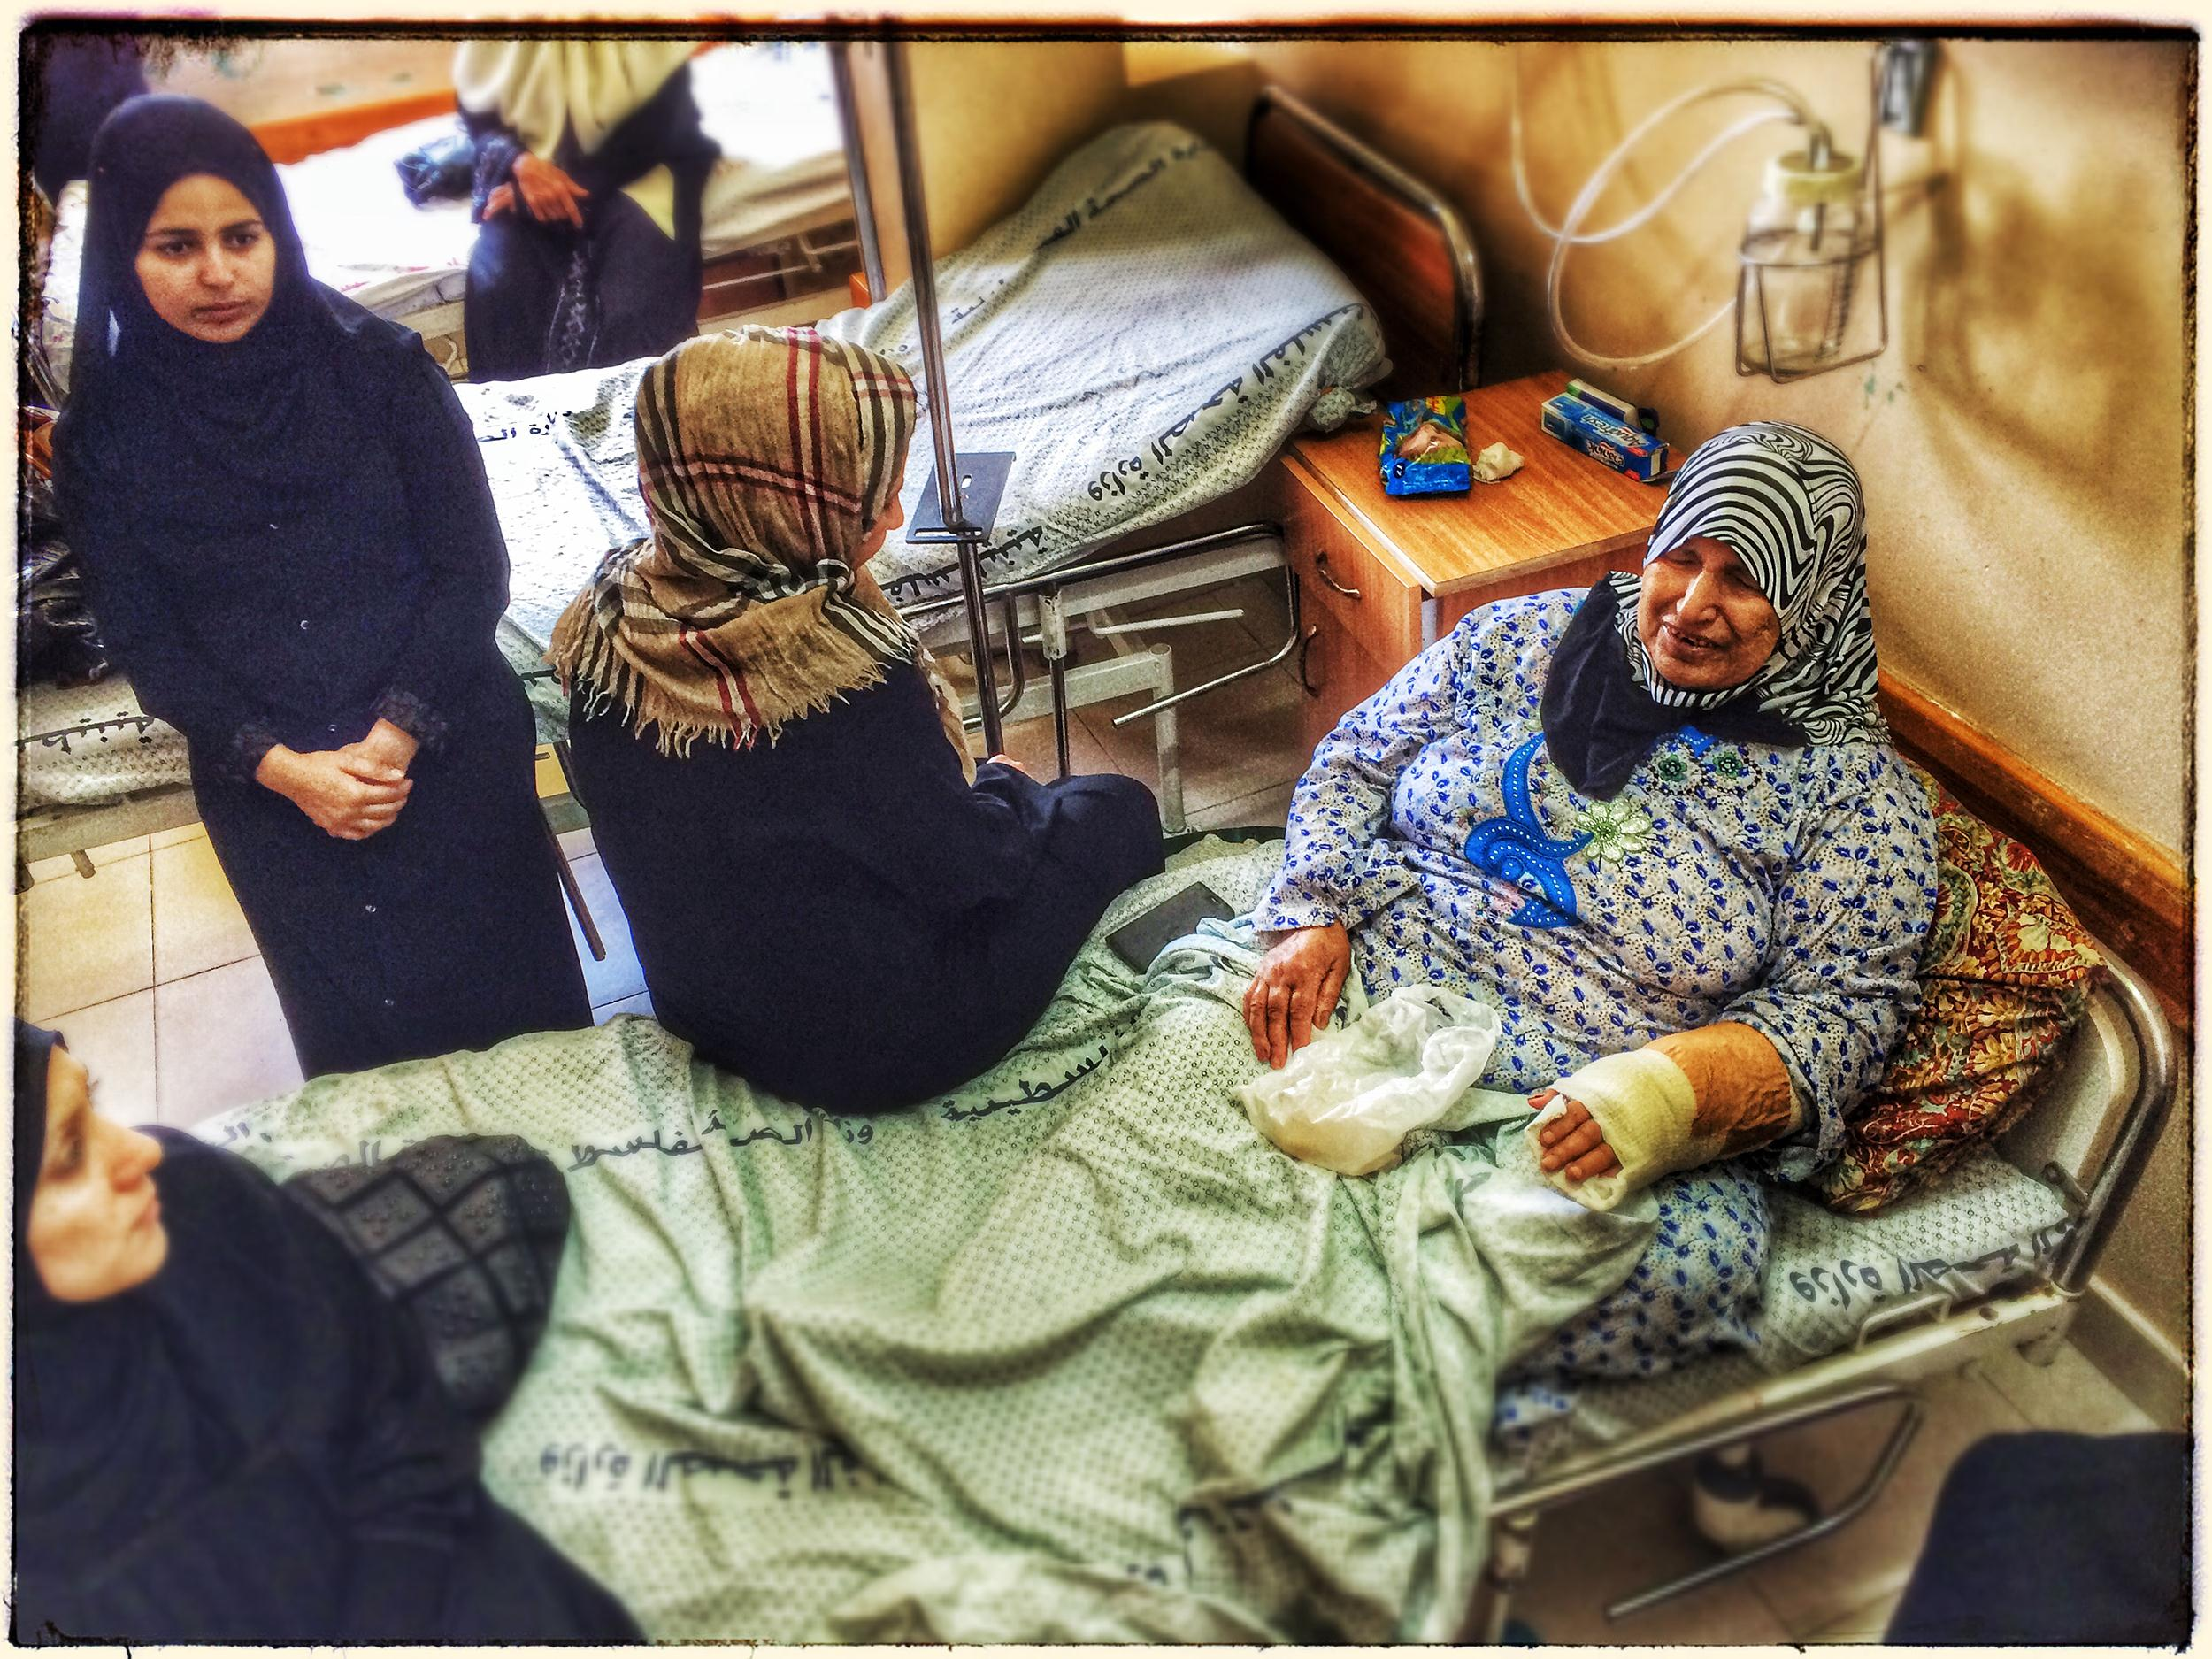 Image: Na'ema Al Battch, the grandmother of the Al Battch family, being comforted by other women at Gaza'a Shifa Hospital.